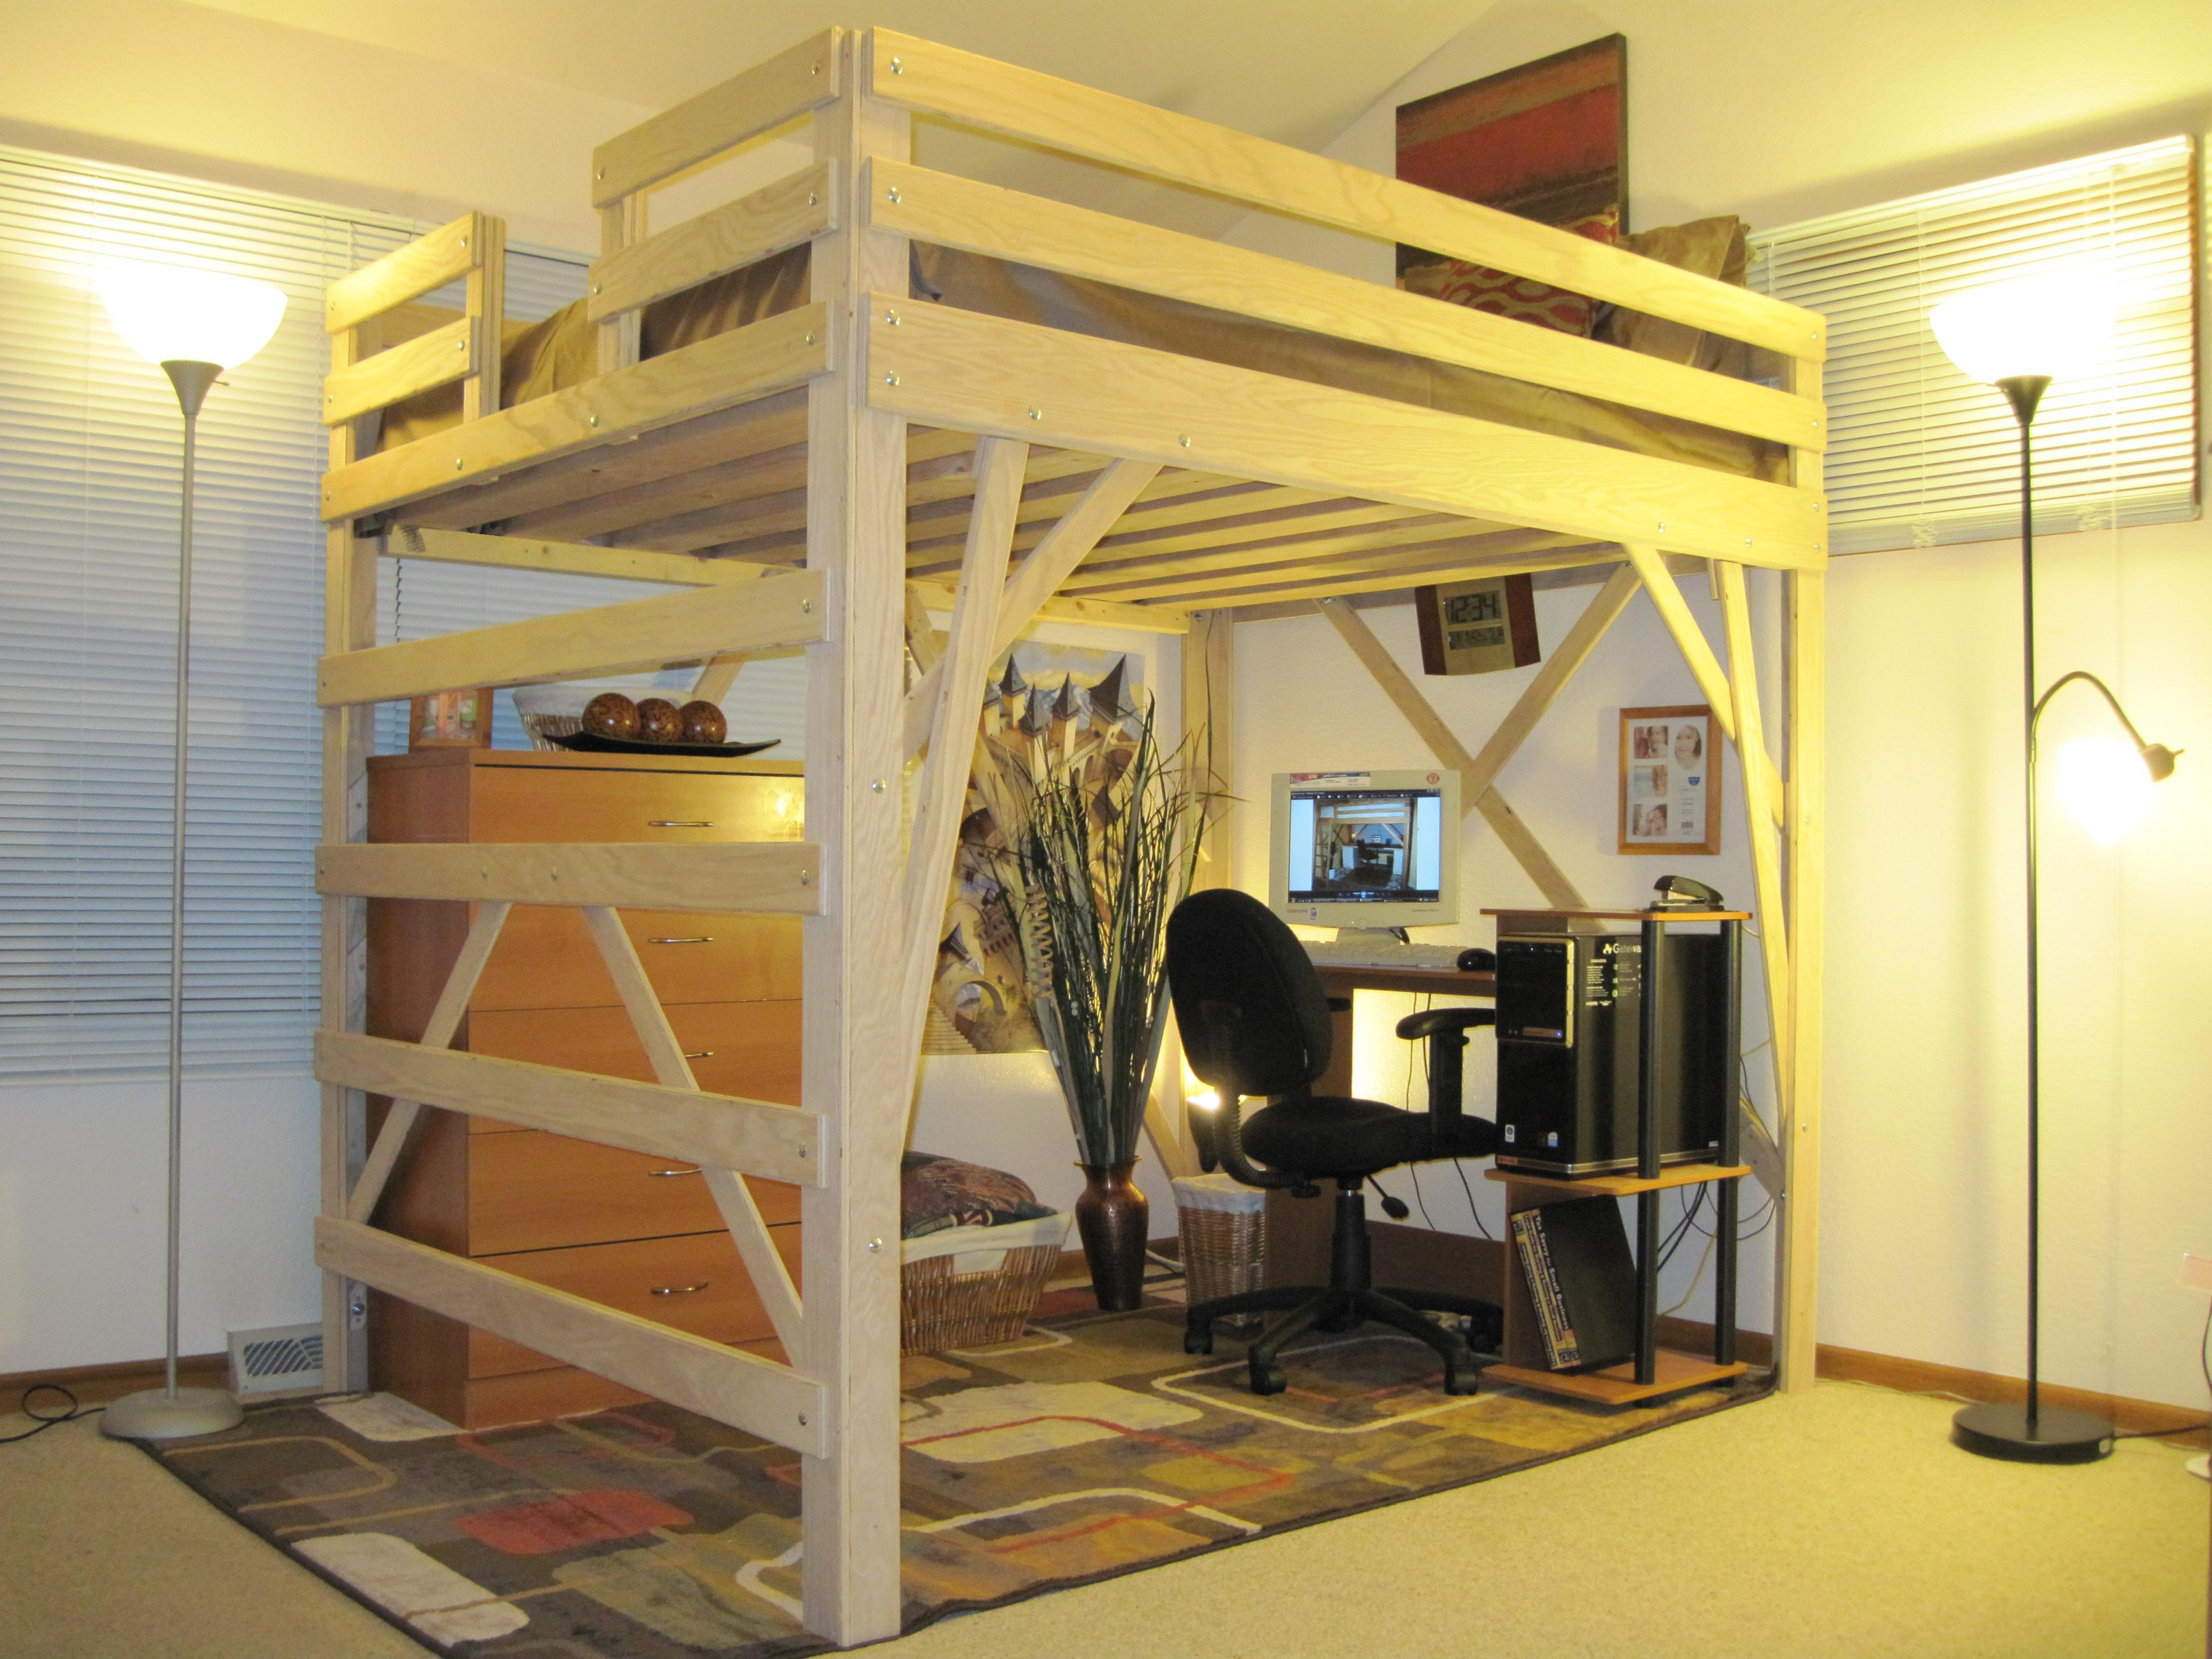 amazing-queen-loft-bed-plans-with-amazing-working-space-under-wooden-cabinet-and-doubled-floor-lamps-and-patterned-rug.jpg